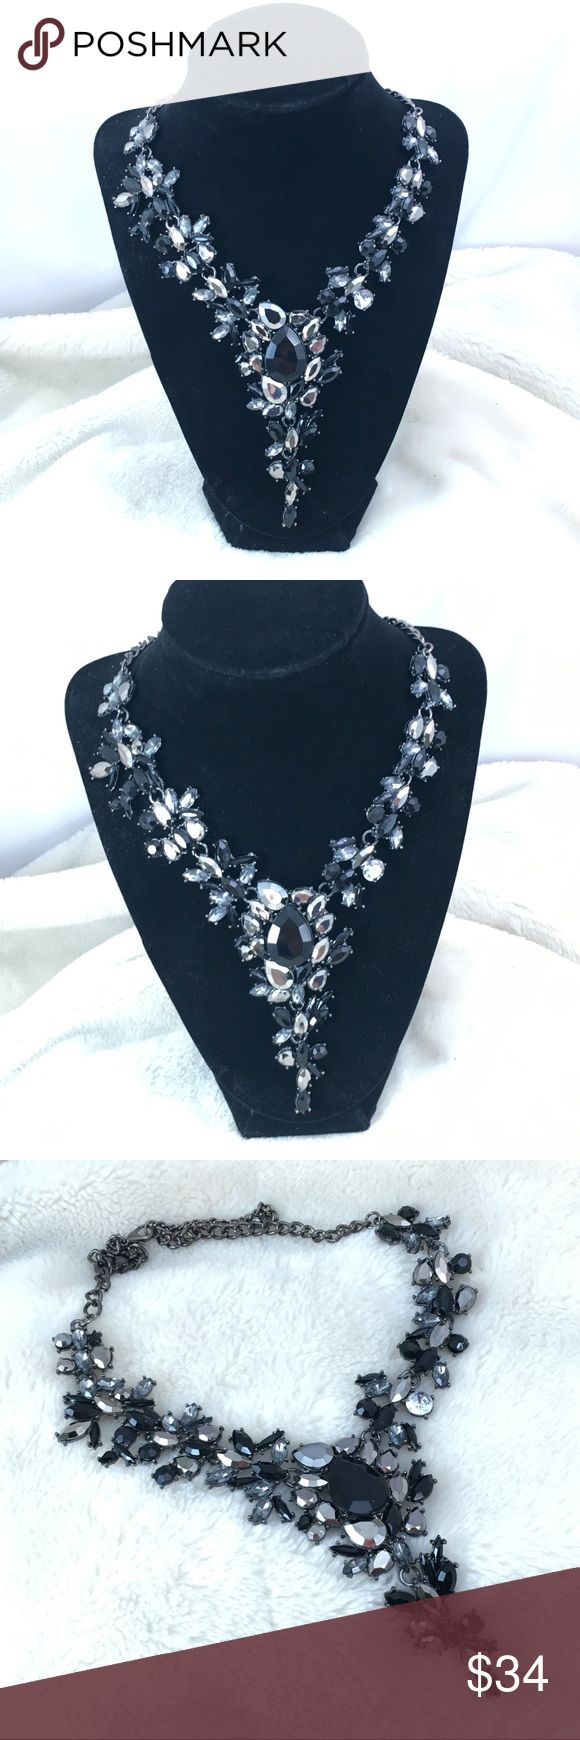 NEW Black Silver Crystal Statement Event Necklace Crystal Statement Necklace for Prom, Pageant and Special Events, Formals   This is a lightweight acrylic set.  Very dramatic yet lightweight! Jewelry Necklaces